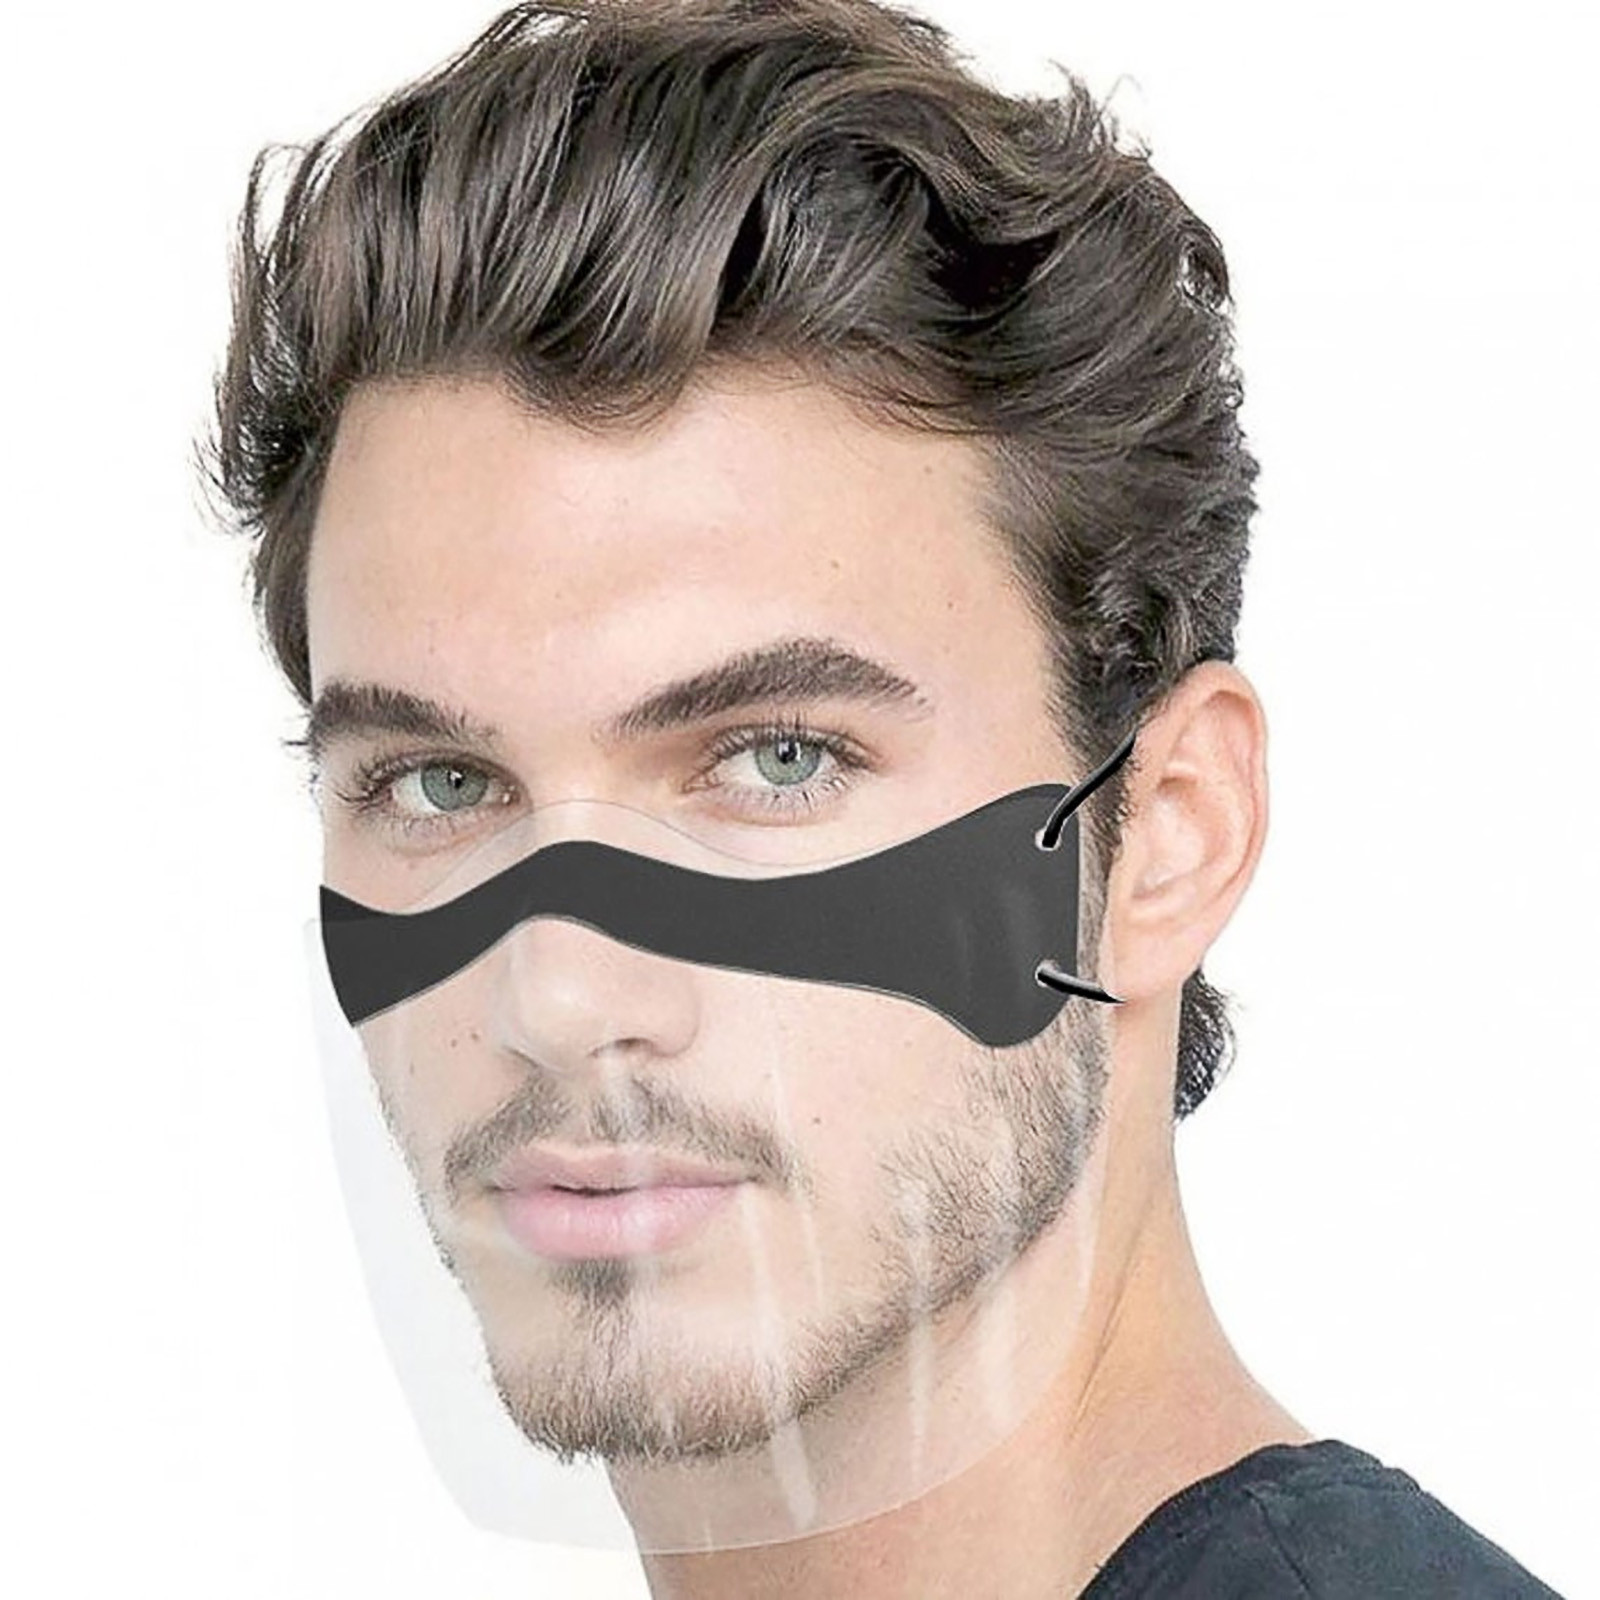 Clear Transparent Face Mask Skin Care Adult Unisex Durable Face Combine Plastic Reusable Face Masks Shield mascarilla cara 1